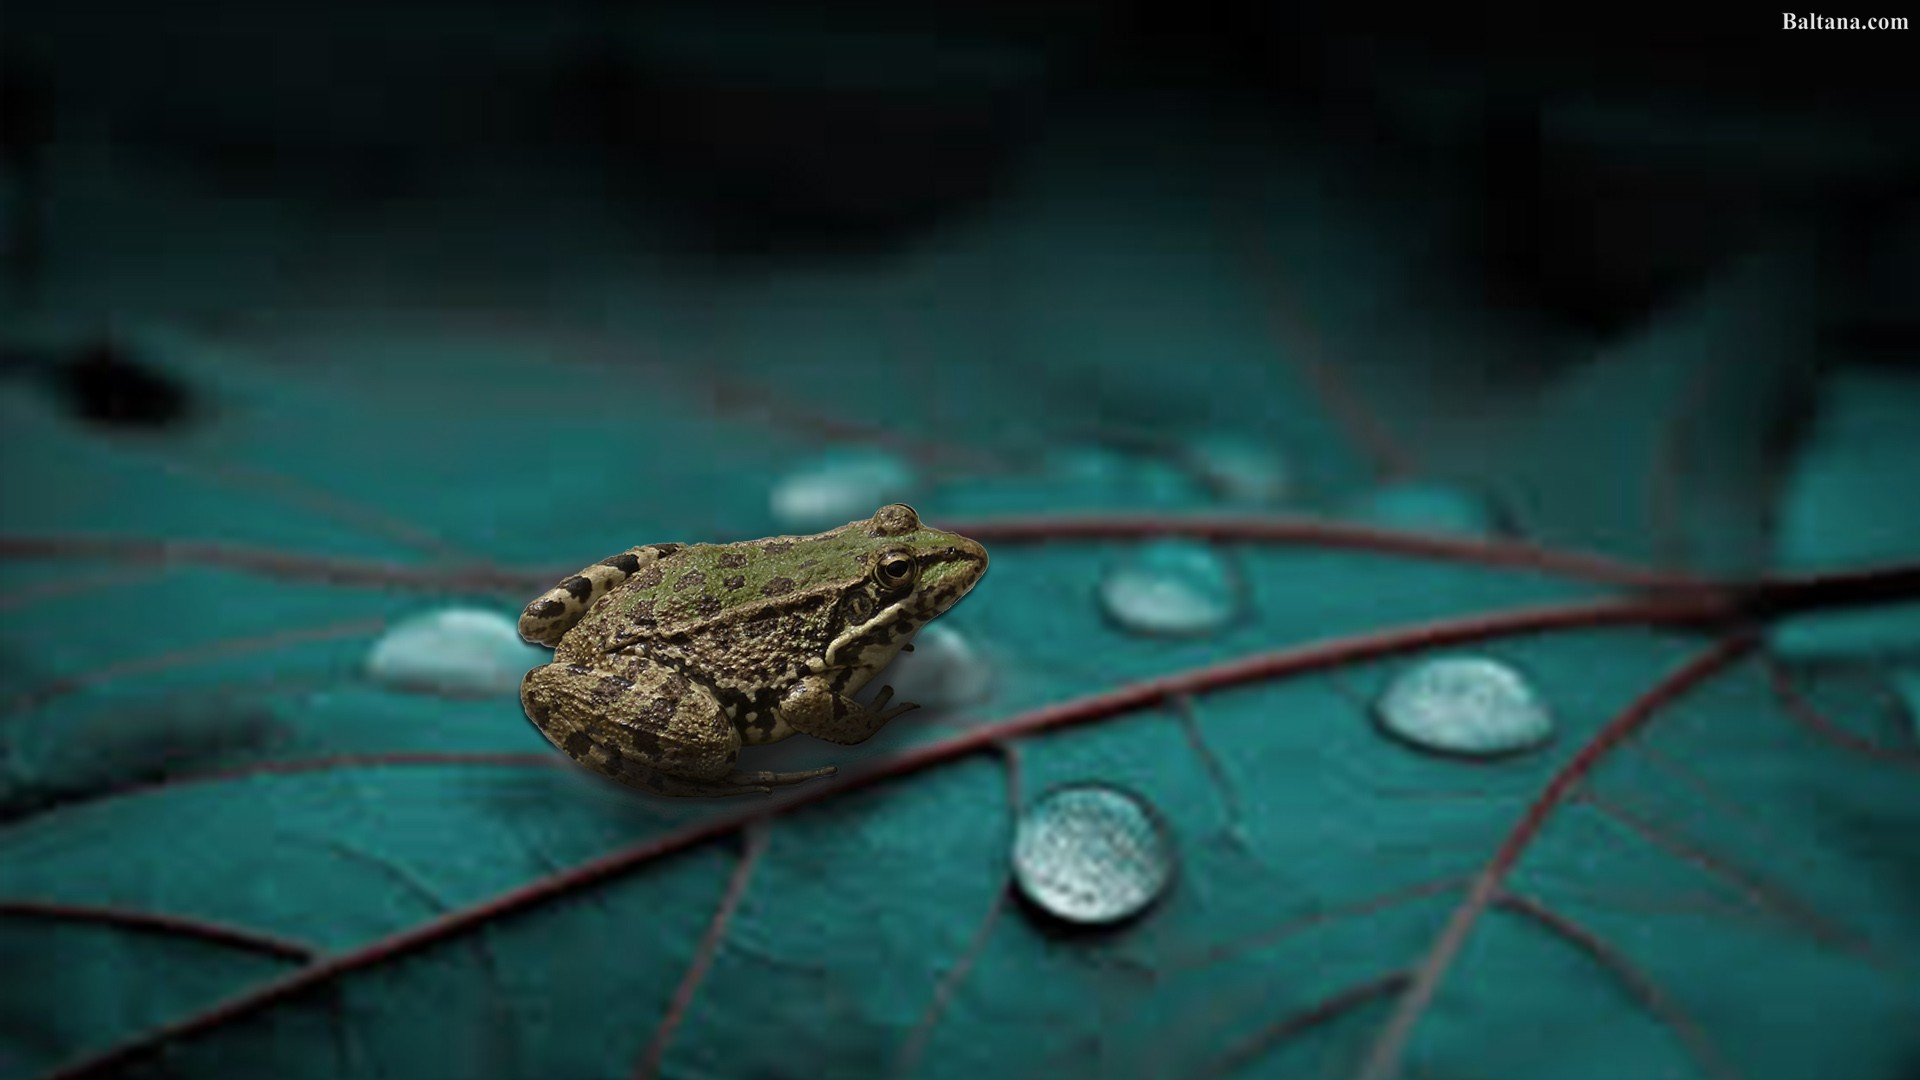 Funny Frog Wallpaper Quotes And Pictures Frog Wallpapers Hd Backgrounds Images Pics Photos Free